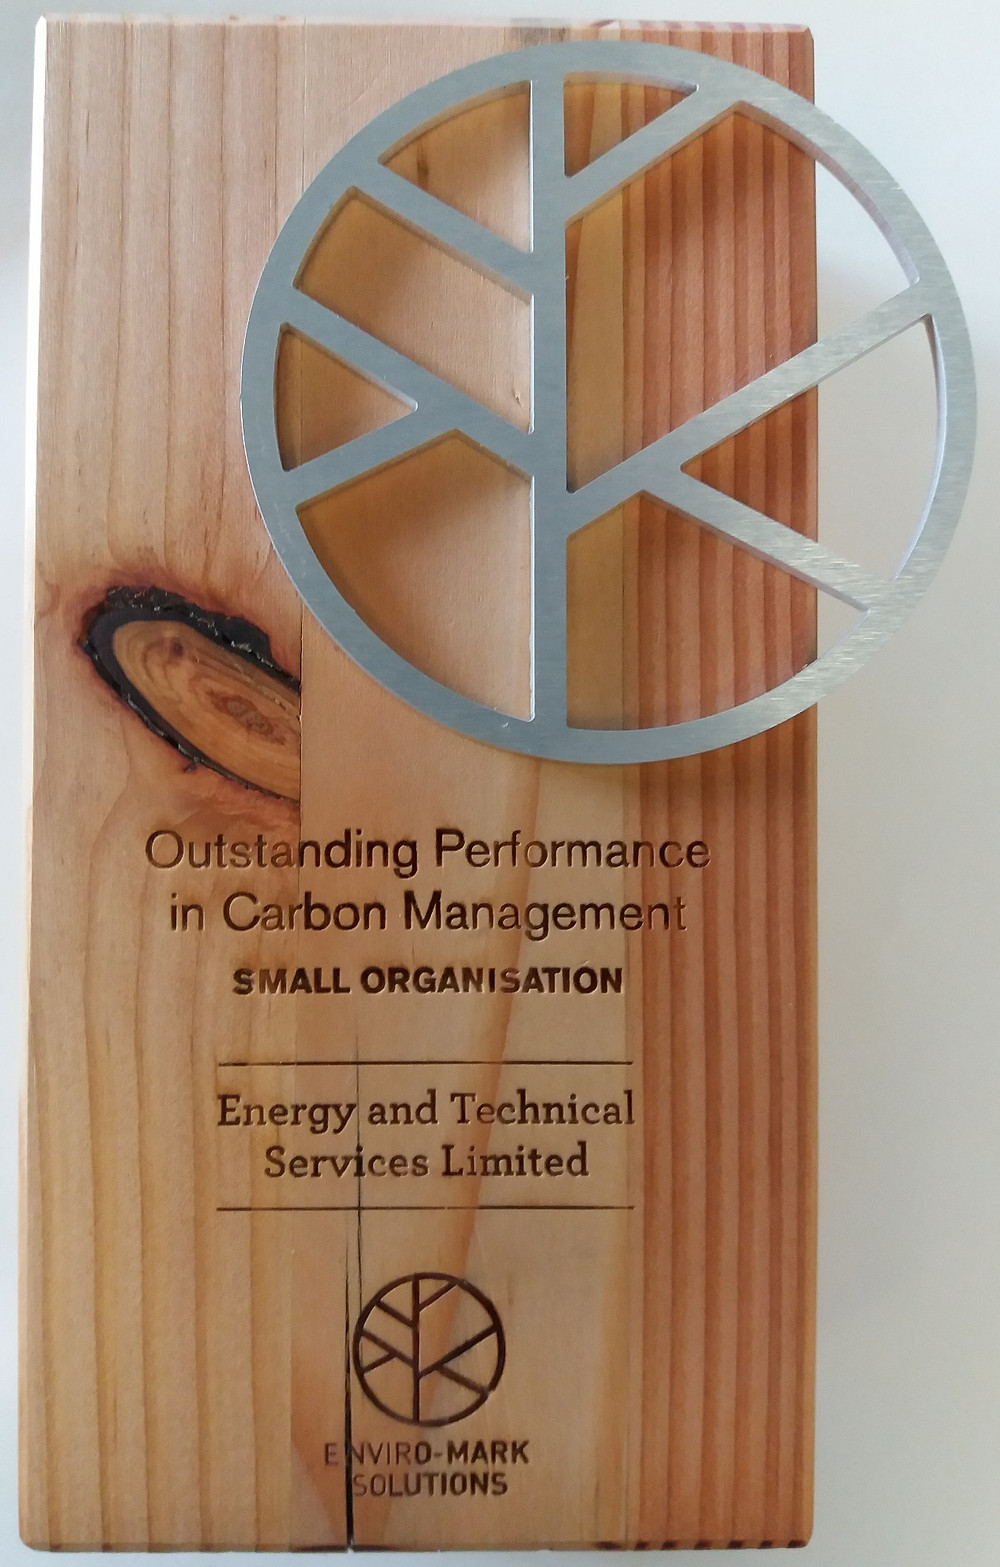 Energy TS award